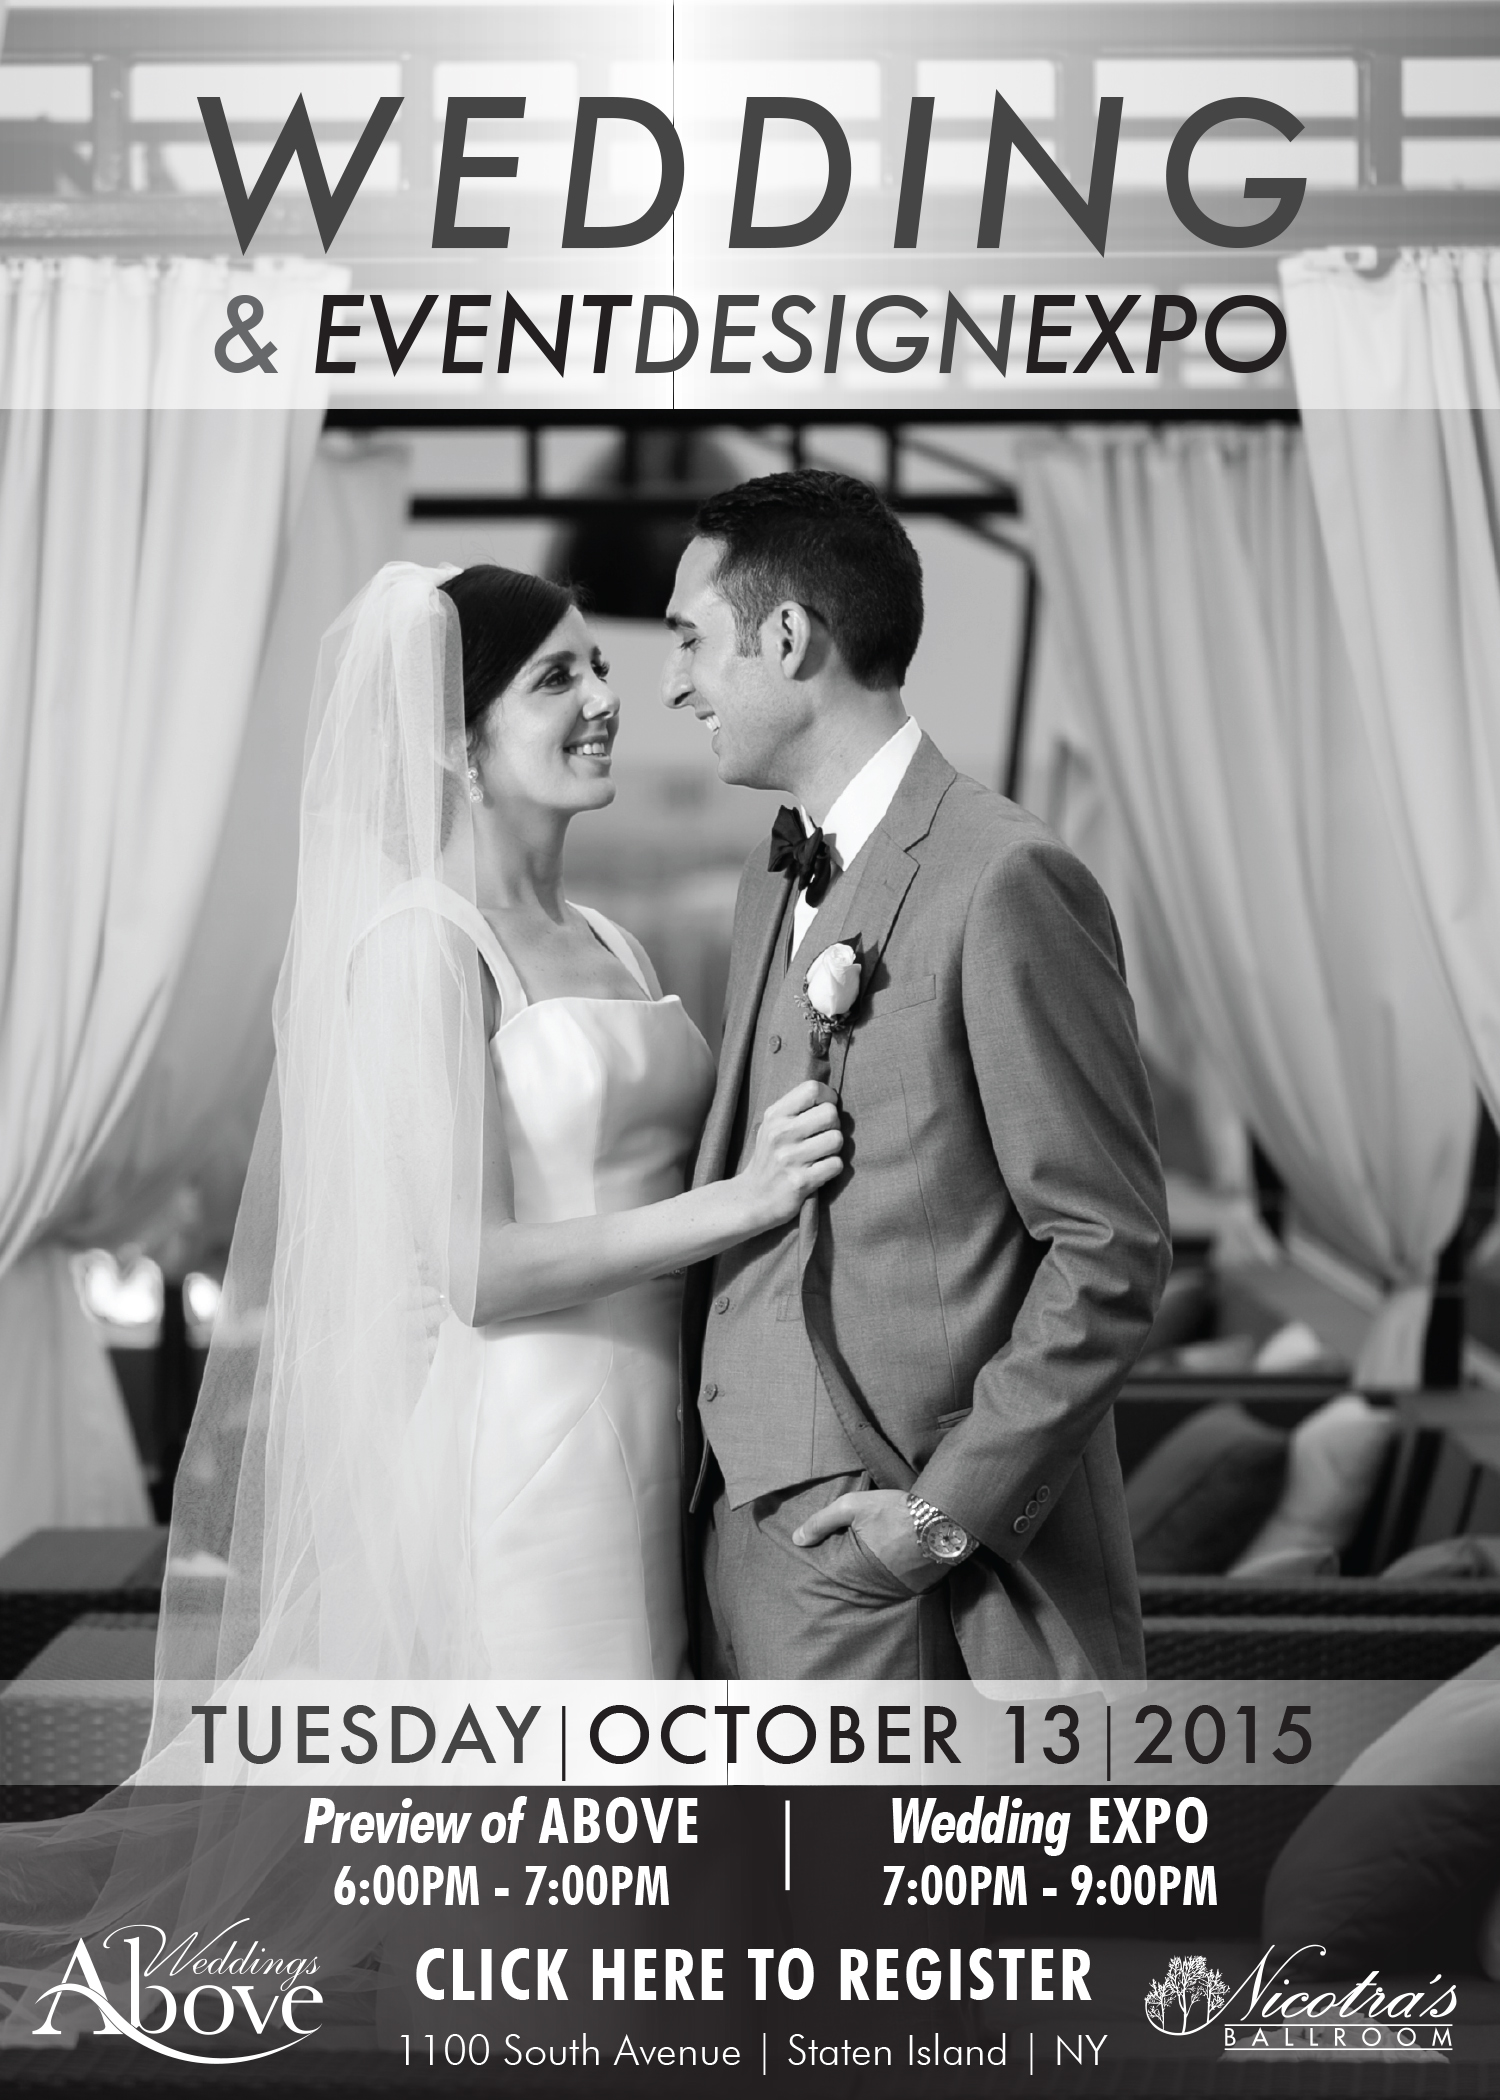 Wedding and event design expo October 13 2015